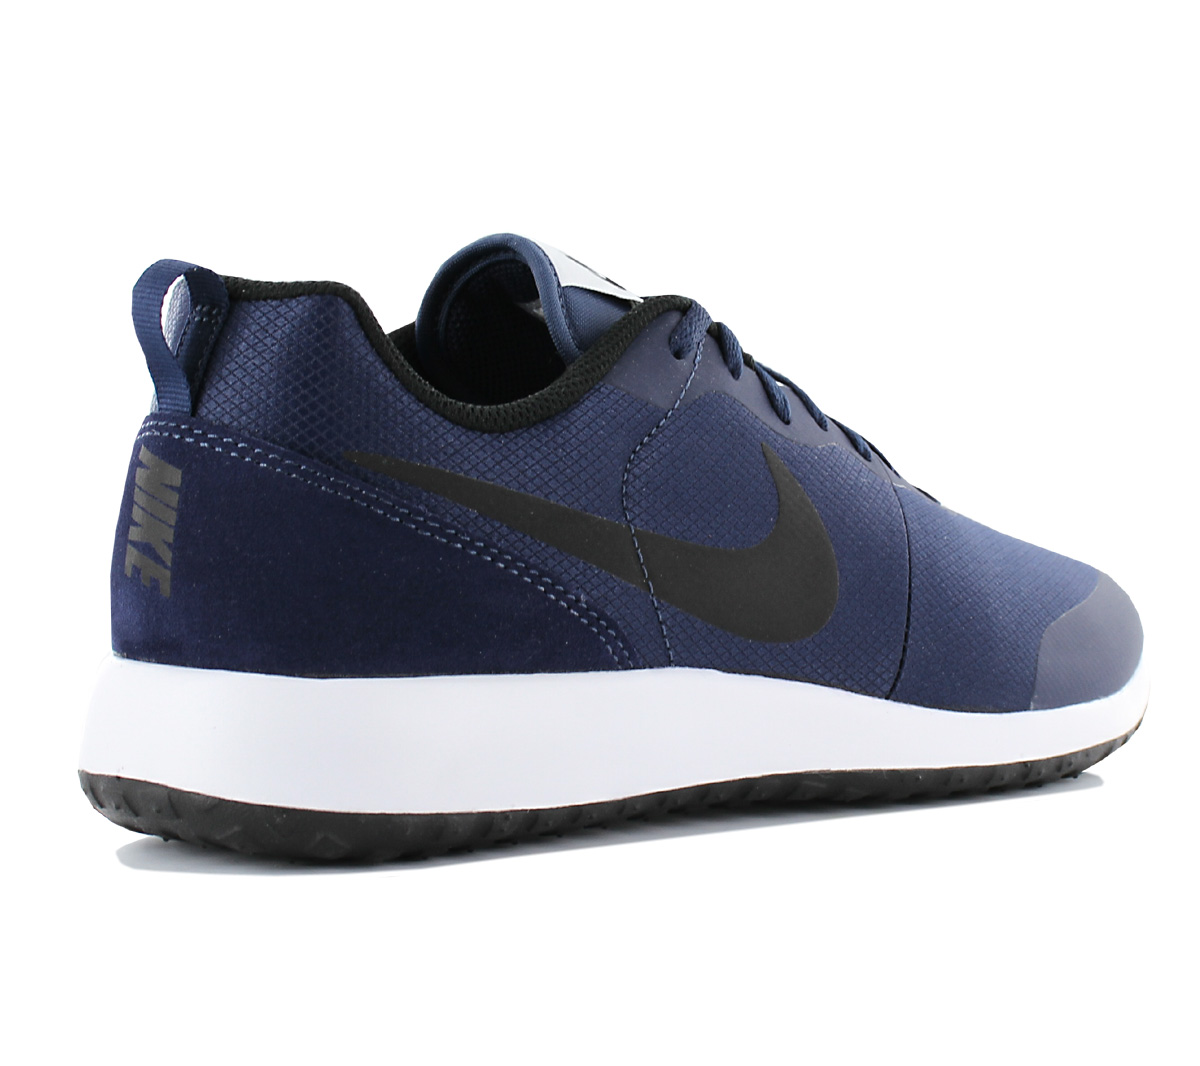 reputable site 65255 a44a2 Nike Elite Shinsen Men s Sneaker Shoes Gym Athletic 801780-400 New ...